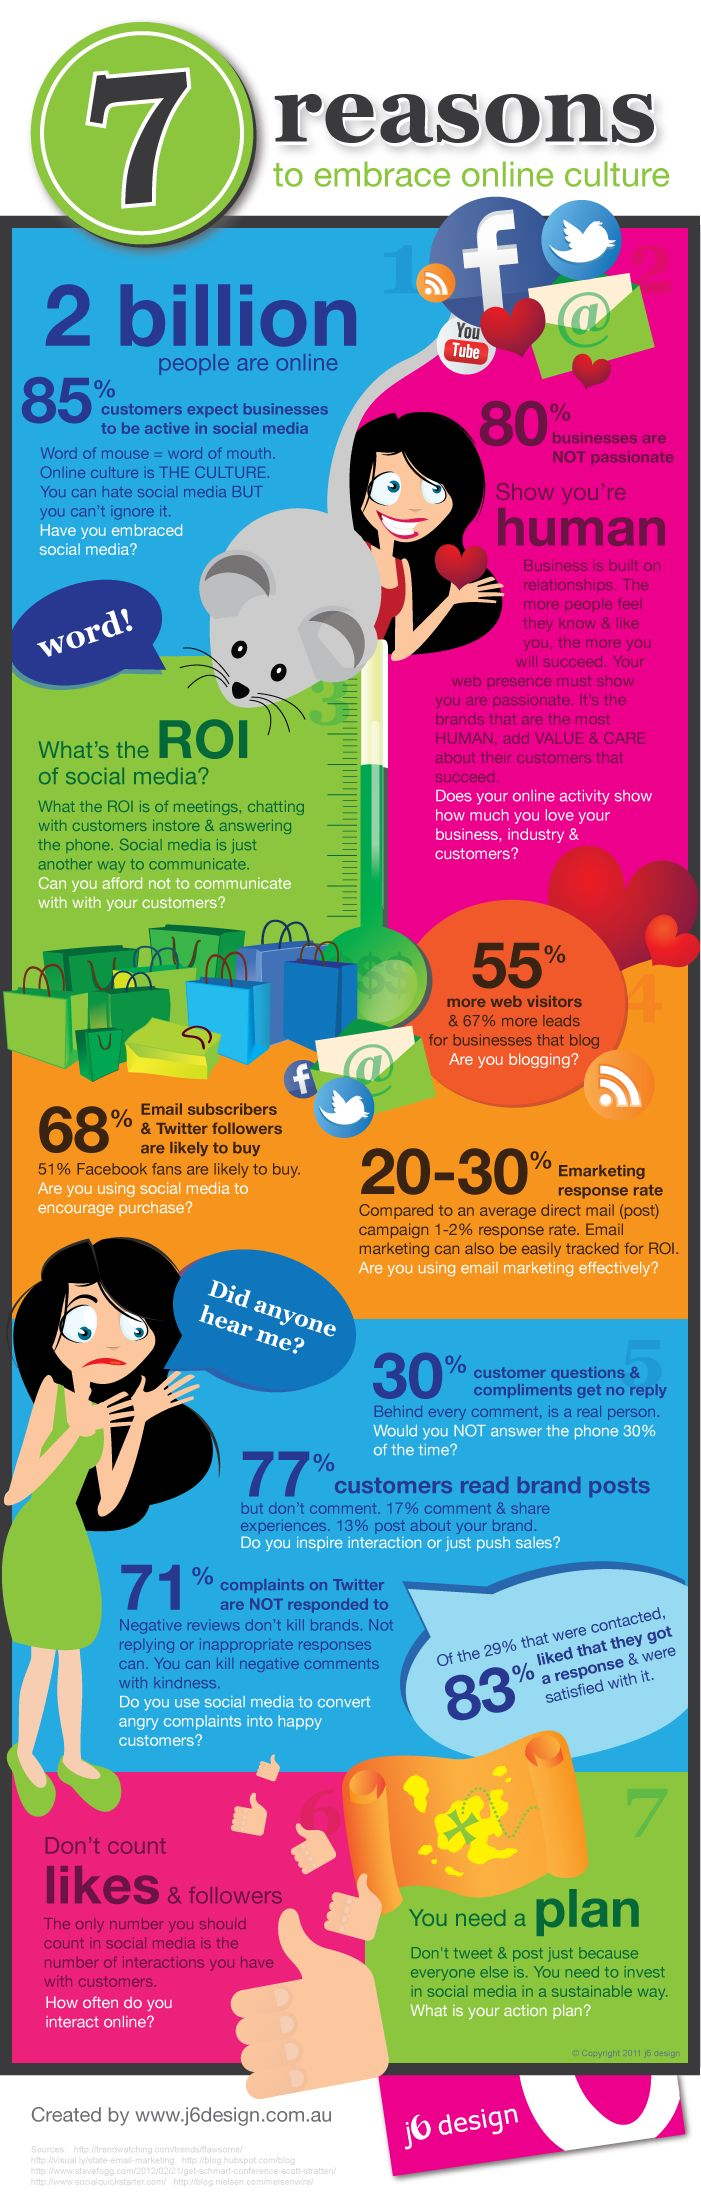 Outstandingly good infographic: 7 reasons to embrace online culture